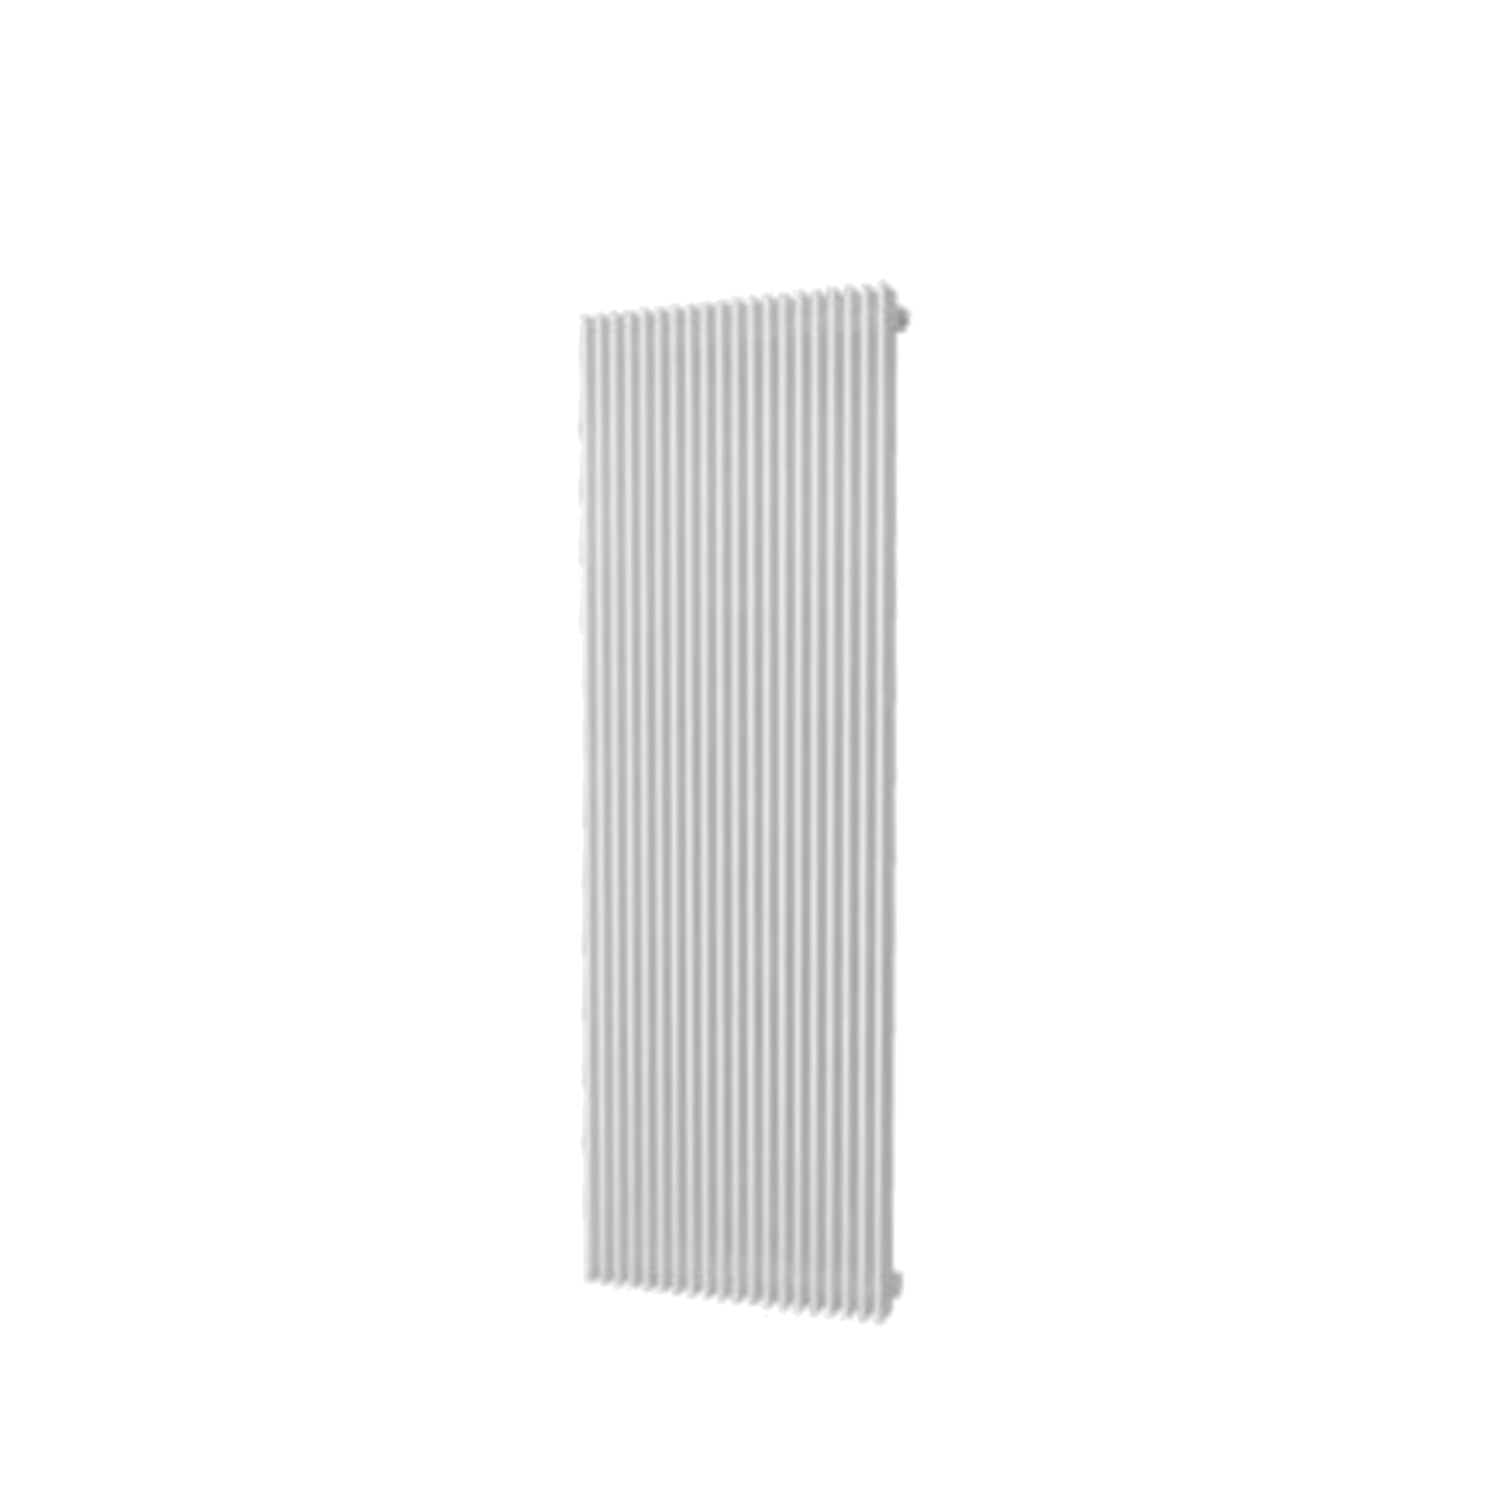 Plieger Antika Retto designradiator verticaal middenaansluiting 1800x595mm 2223W wit